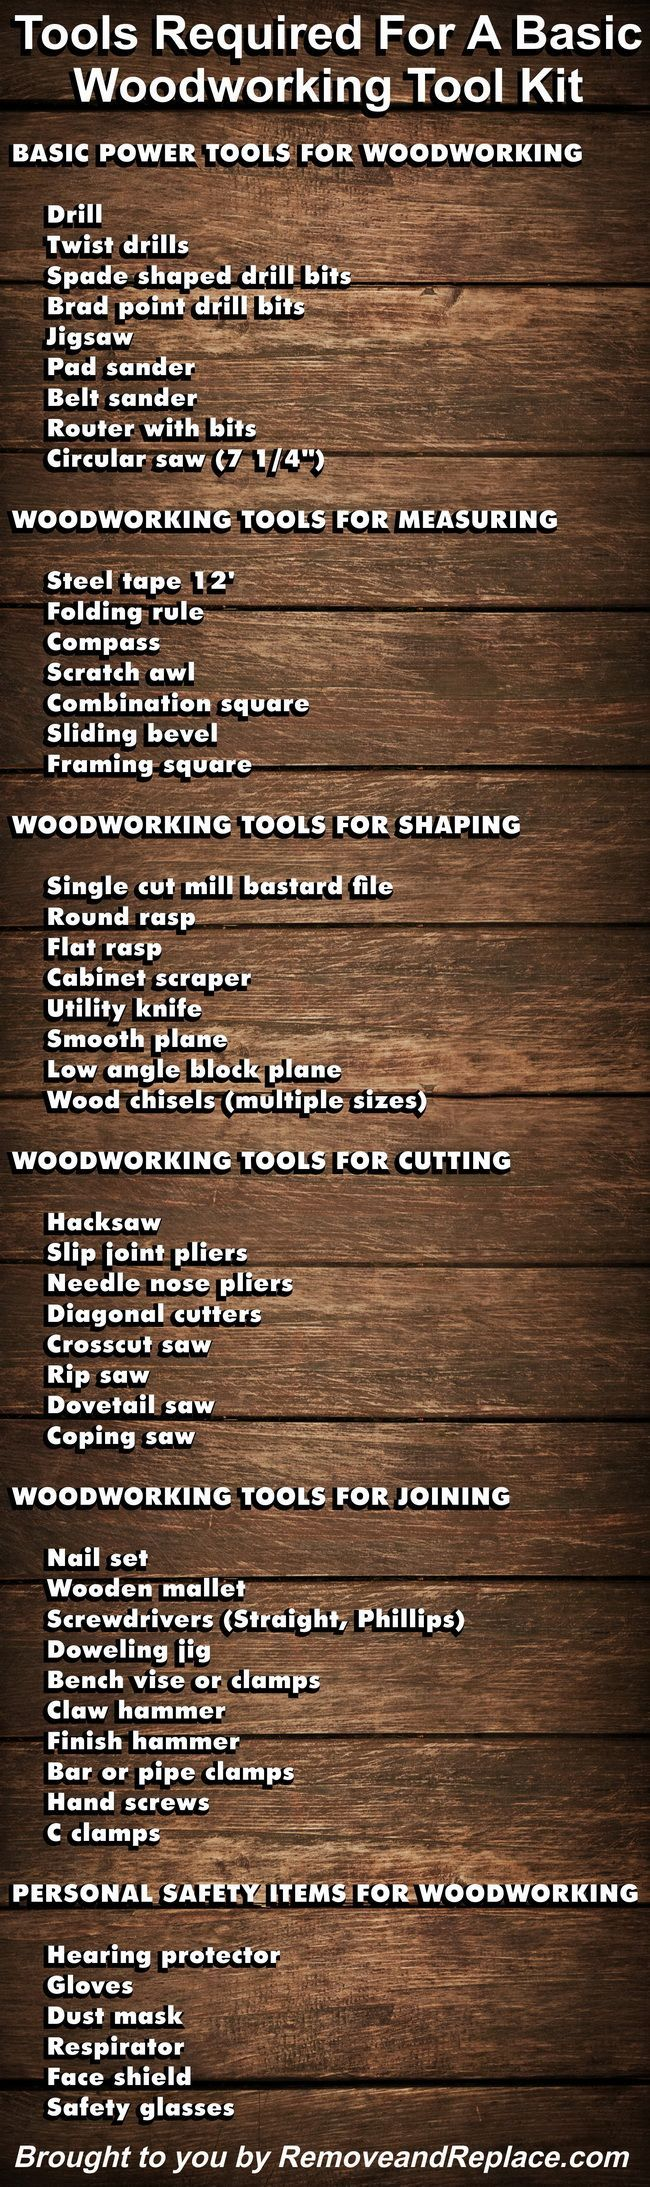 Tools Required For A Basic Woodworking Tool Kit Read more: http://removeandreplace.com/2015/01/13/tools-required-for-a-basic-woodworking-tool-kit/#ixzz3OkDgFII5: